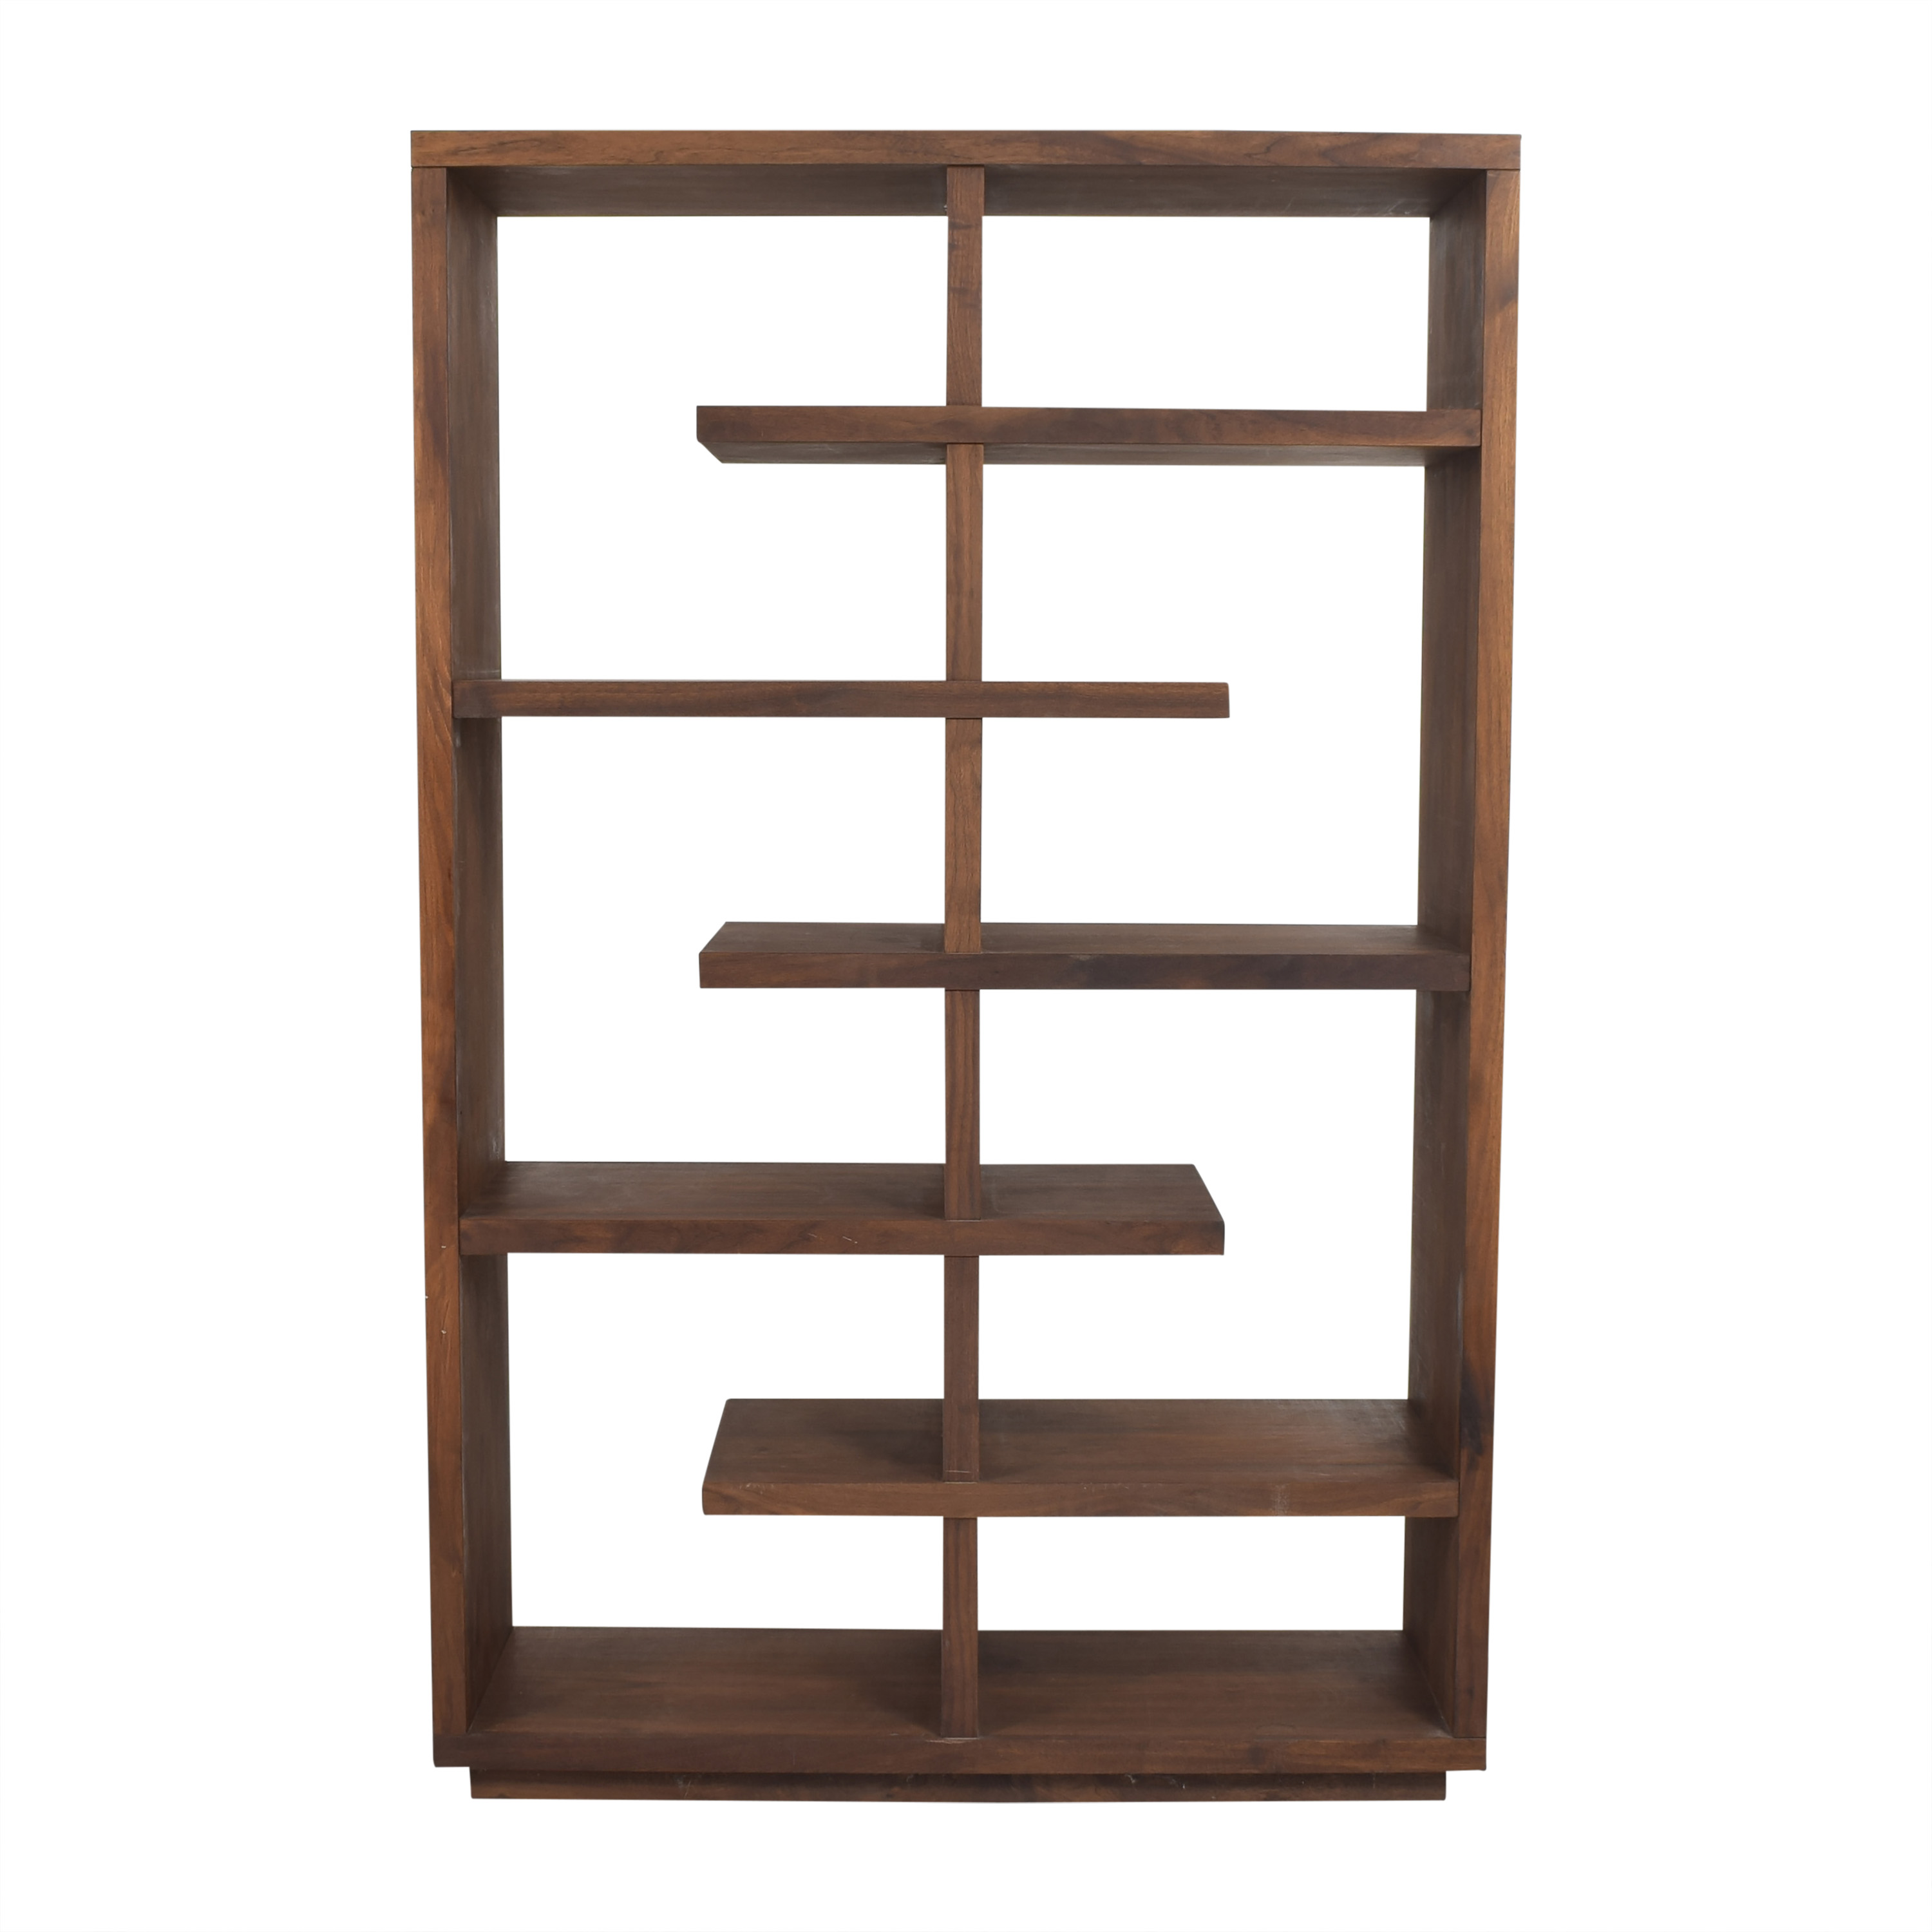 Crate & Barrel Elevate Bookcase Crate & Barrel